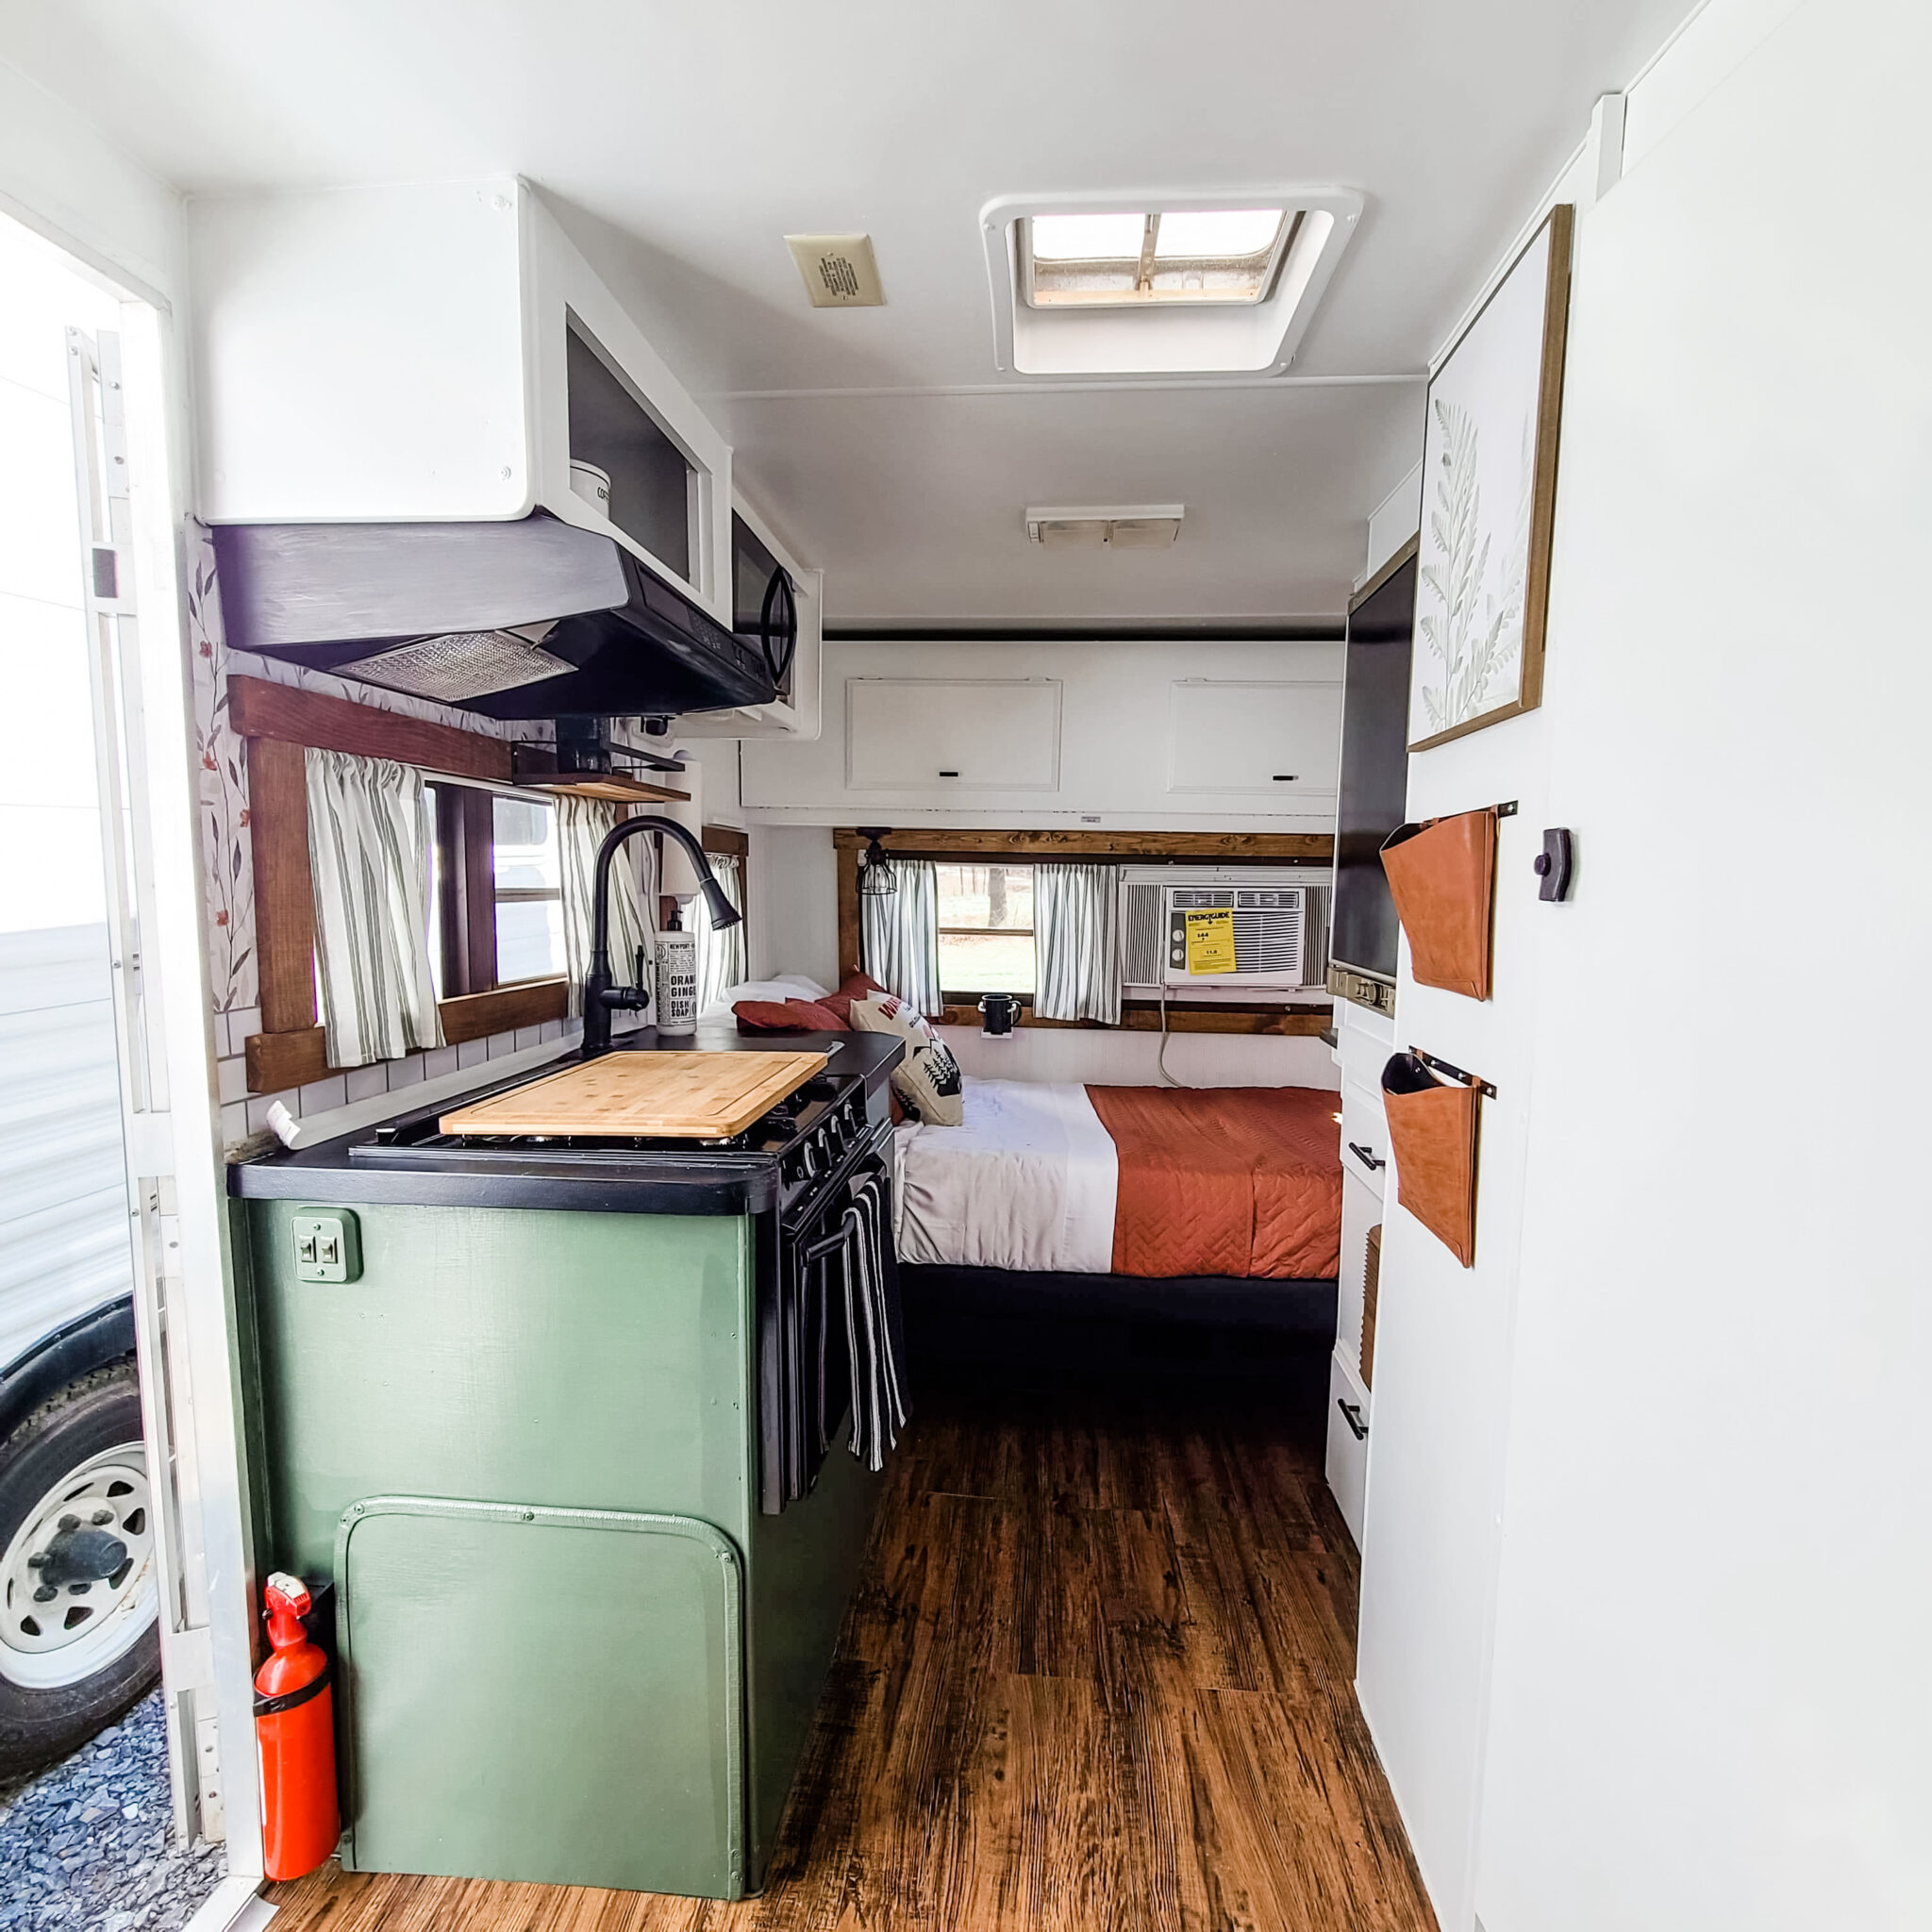 This Tiny Vintage Trailer was Transformed Into an Adorable Home on Wheels All Things with Purpose Sarah Lemp 26